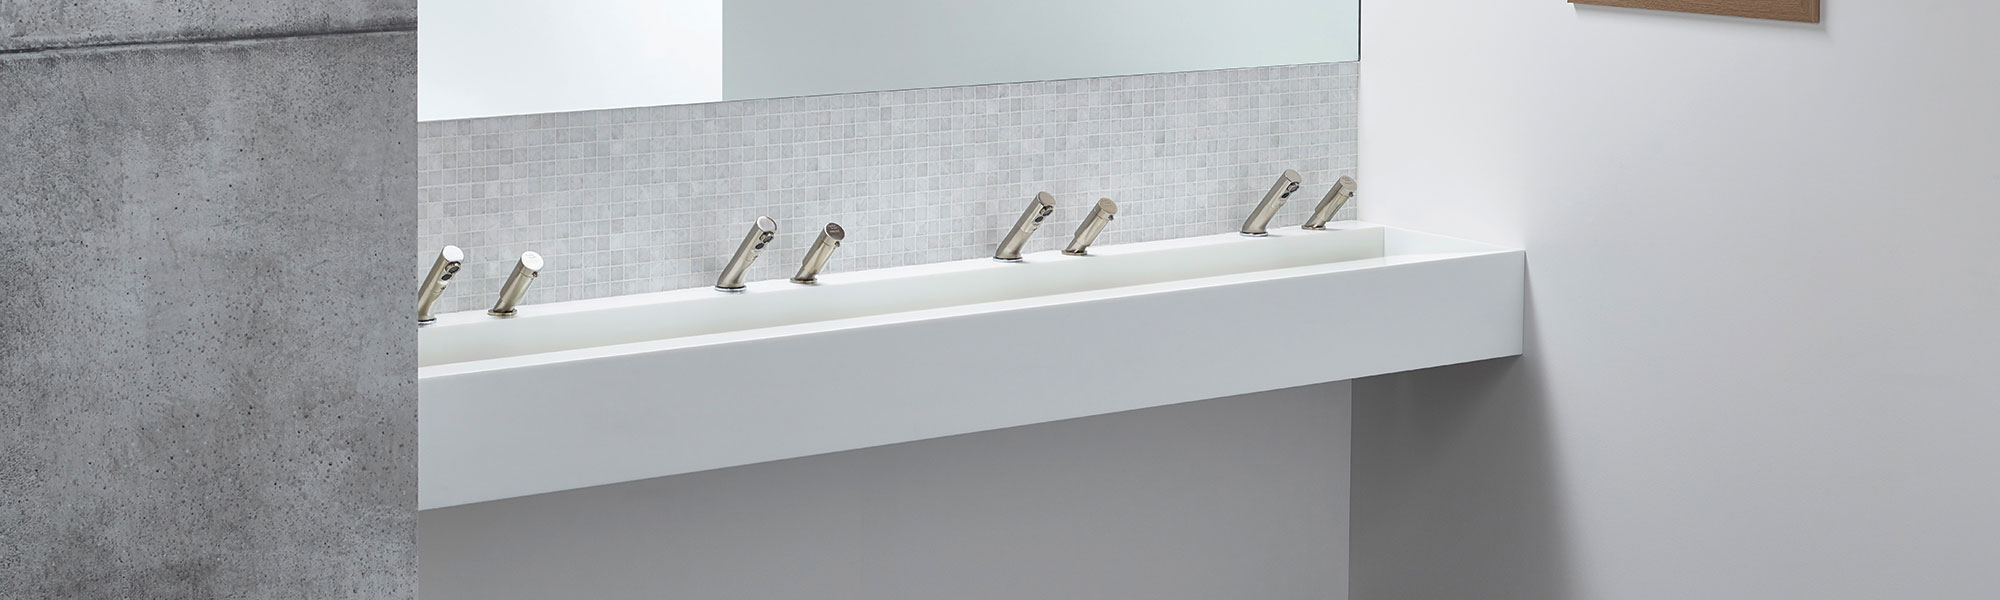 Solid Surface | Wash Troughs | Ideal Standard